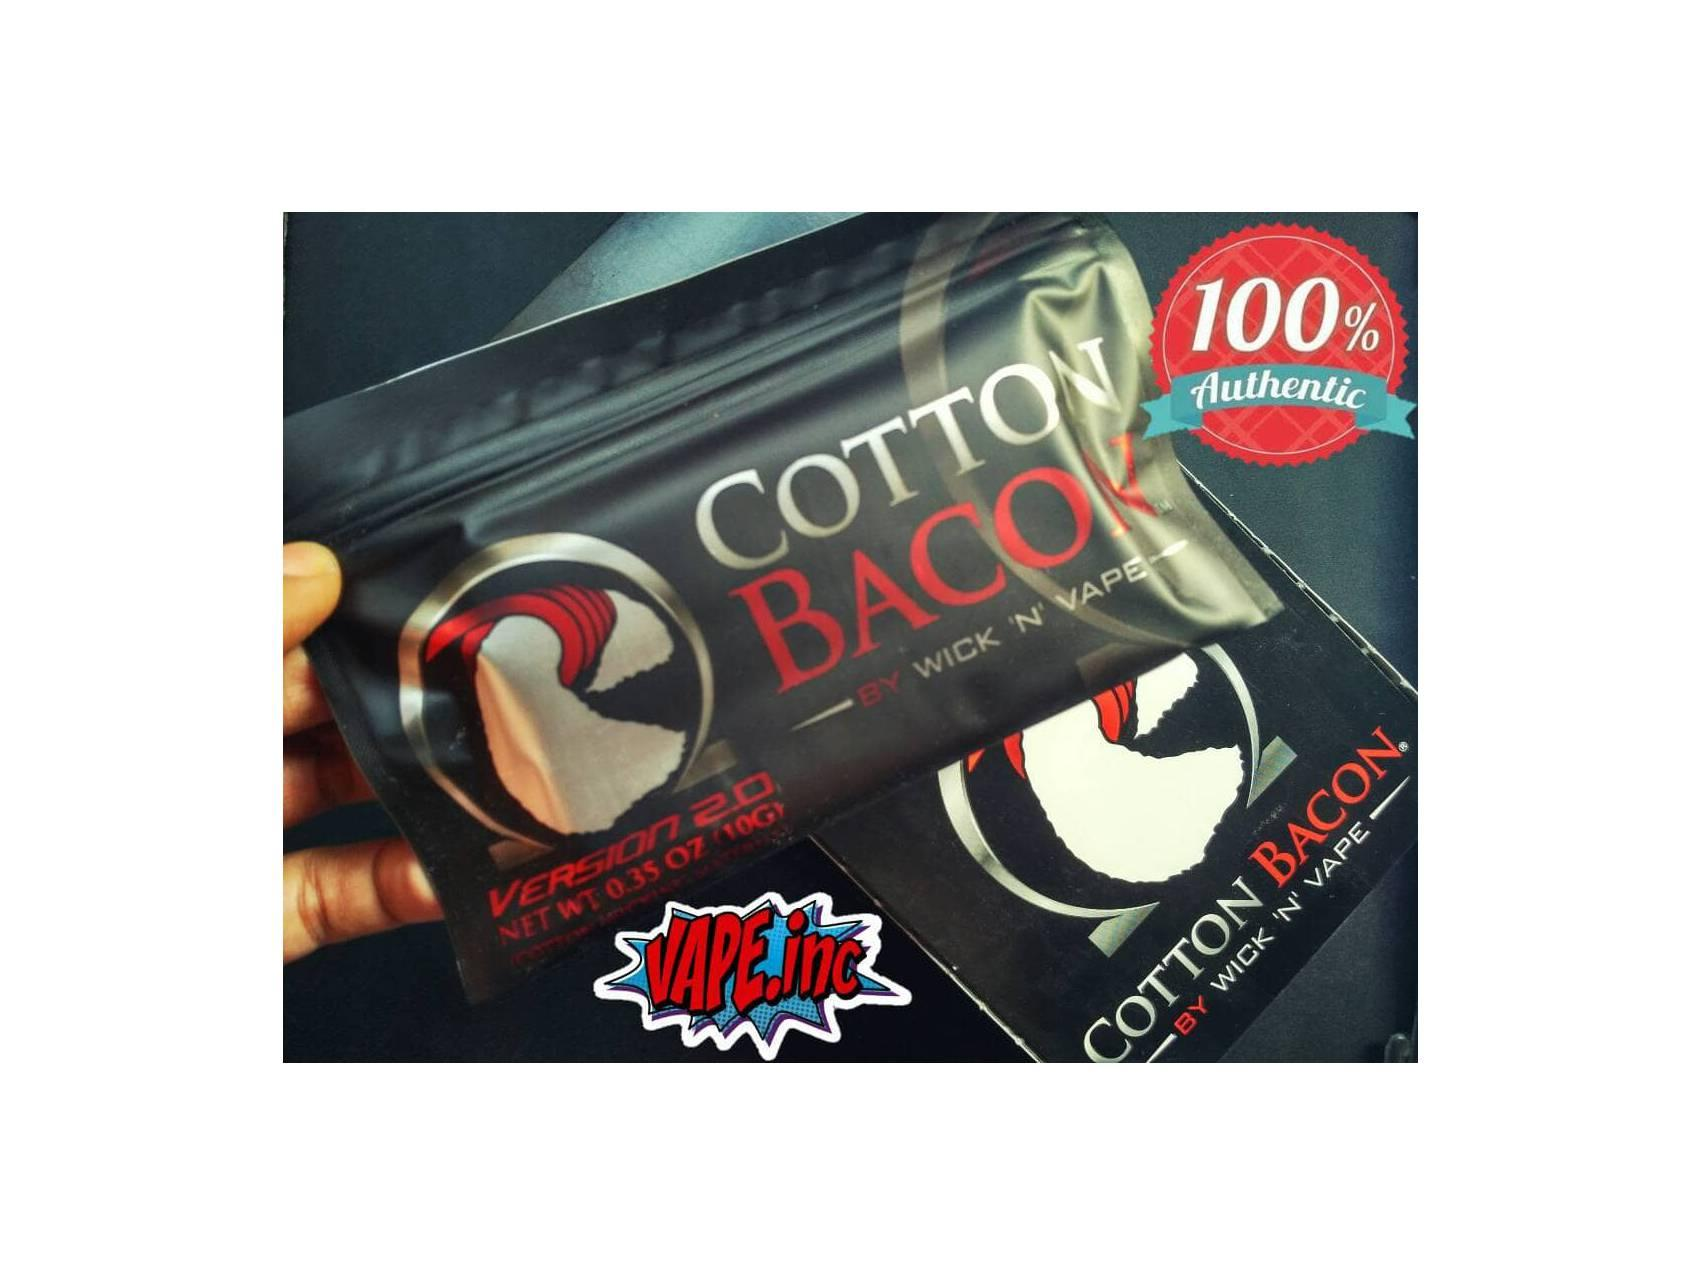 Authentic COTTON BACON V2 / Version 2.0 by Wick N Vape *(not atomix